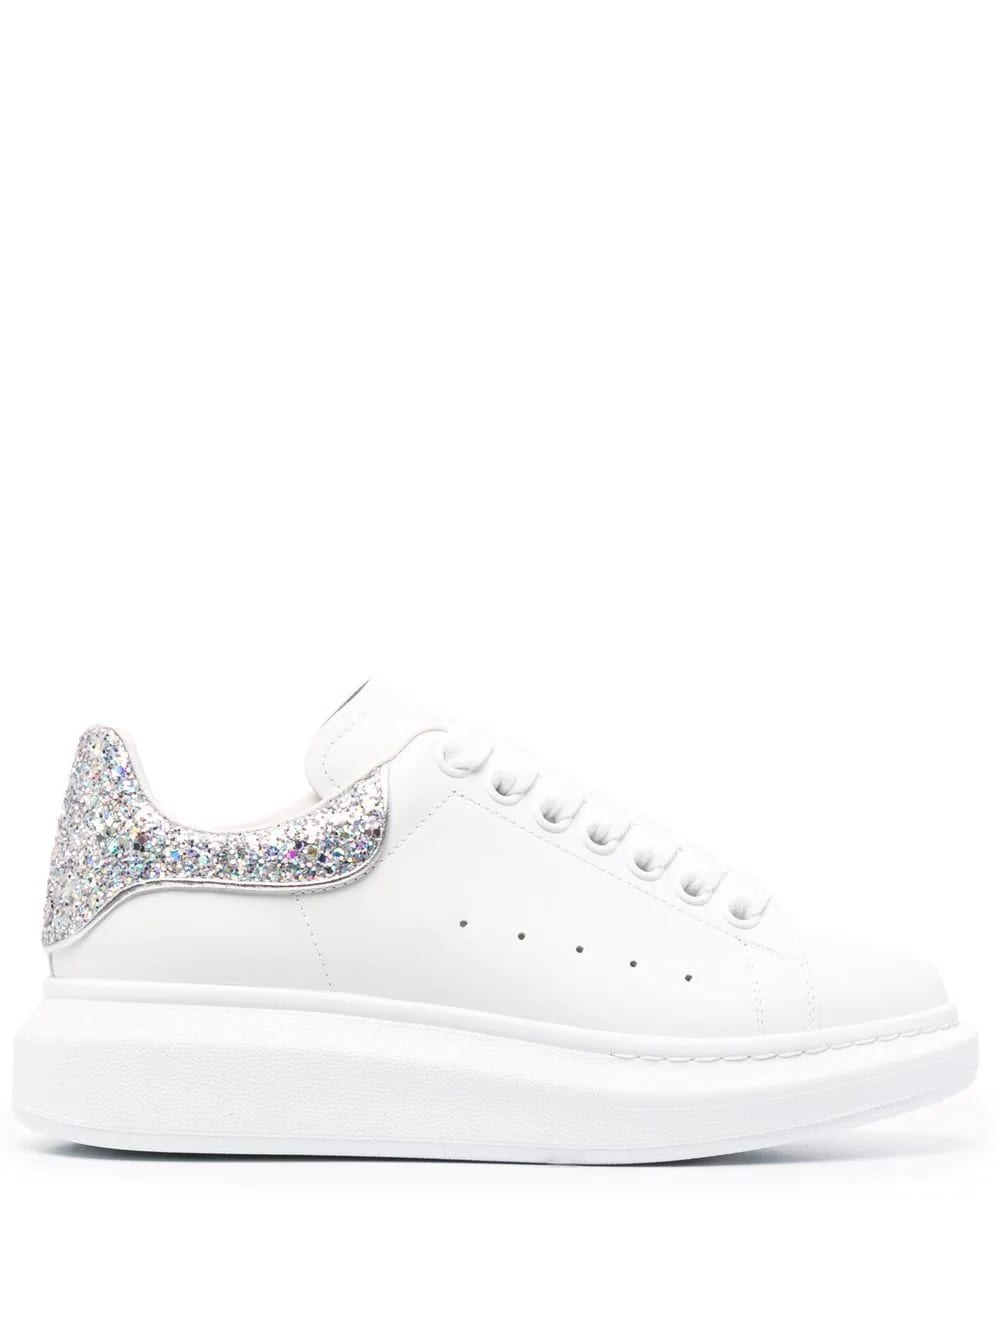 Alexander McQueen Woman White Oversize Sneakers With Silver Glitter Spoiler